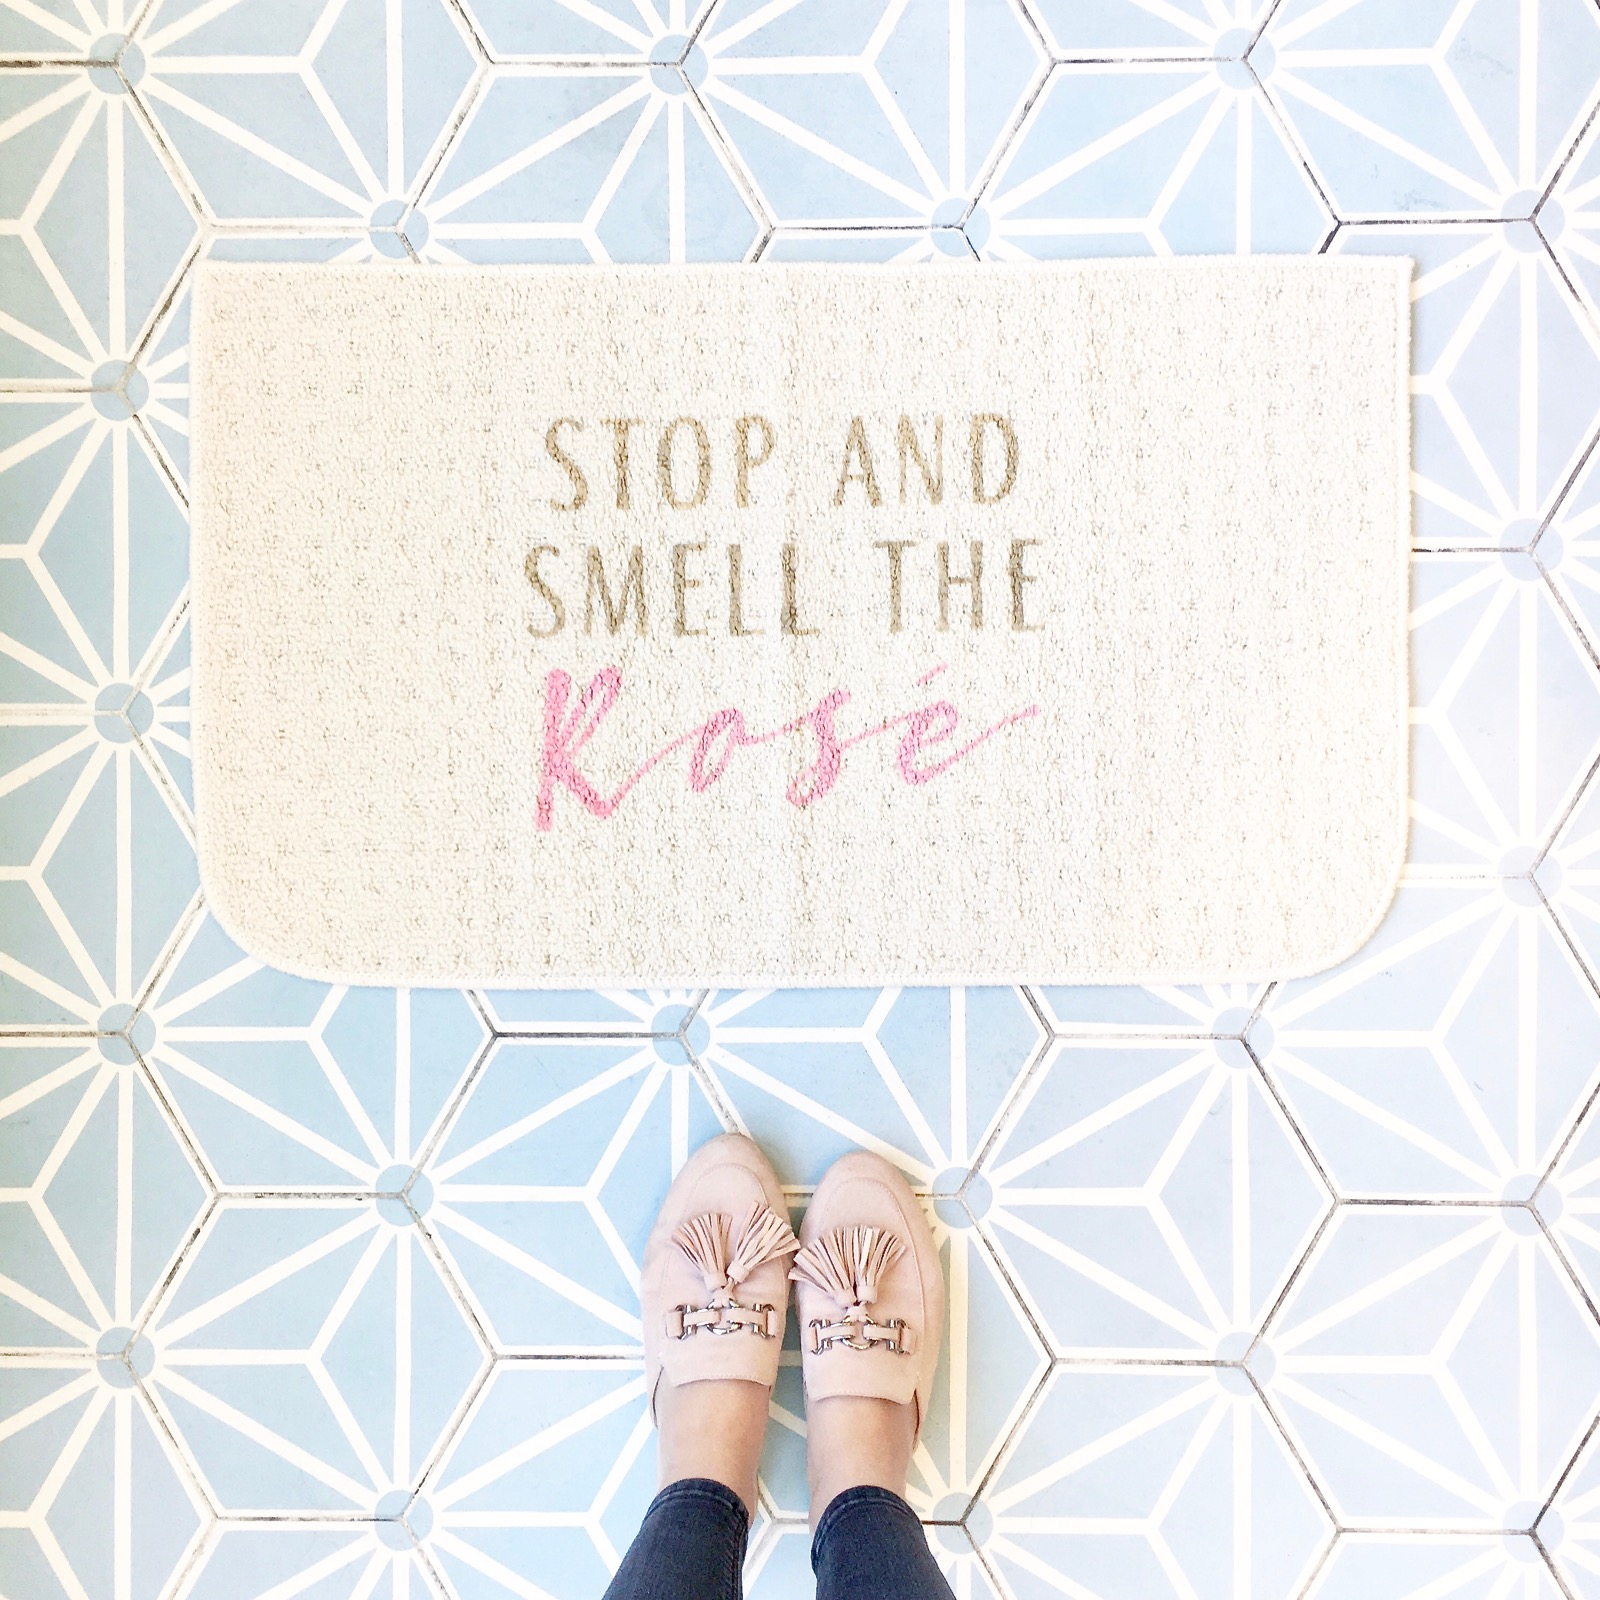 Stop And Smell The Rose Doormat